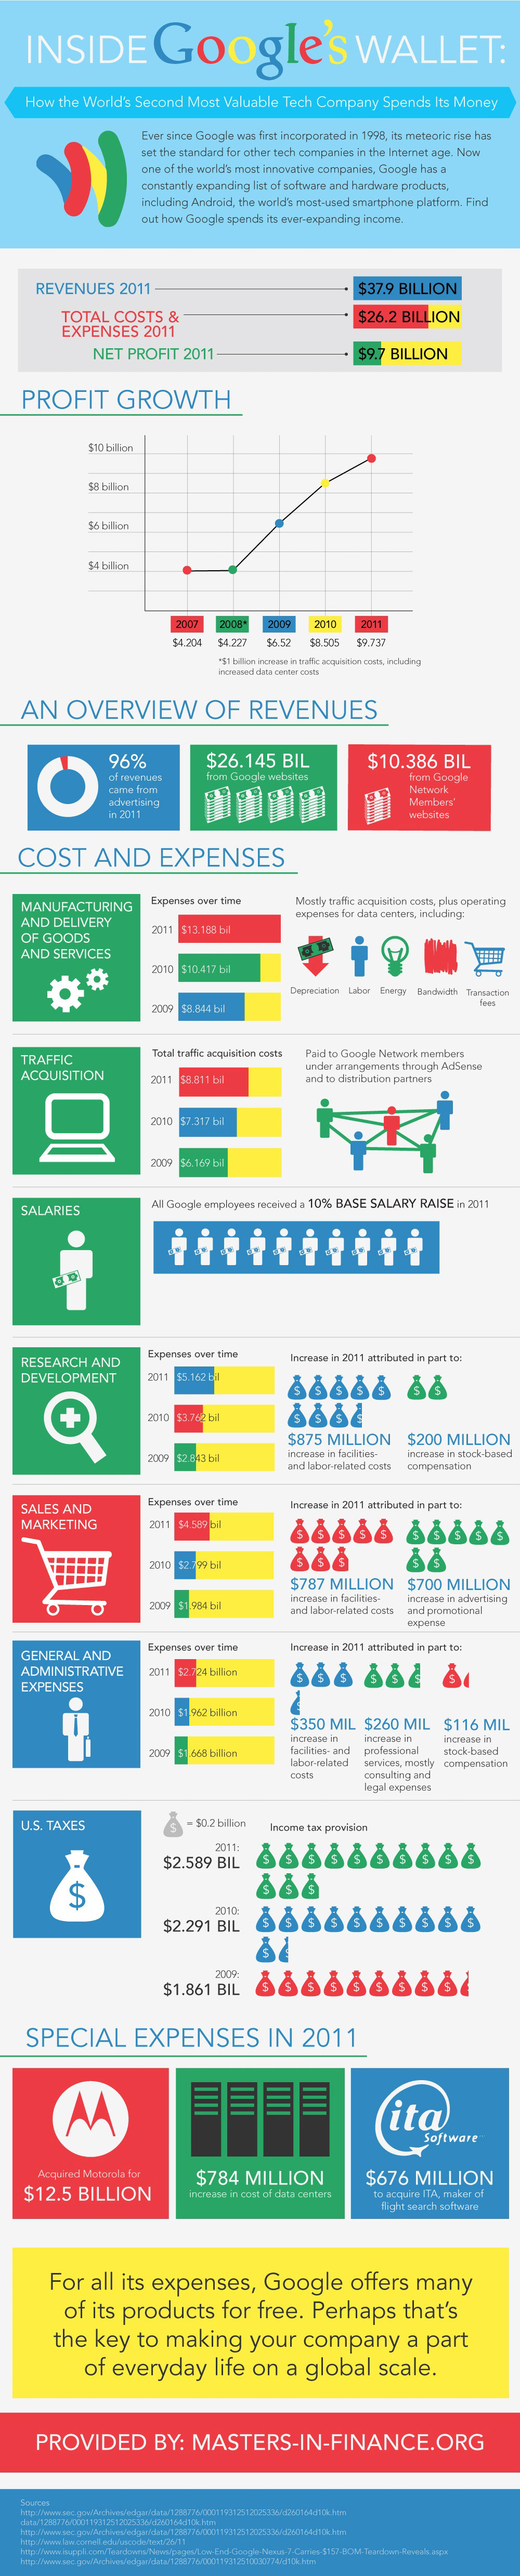 Google Finance-Infographic